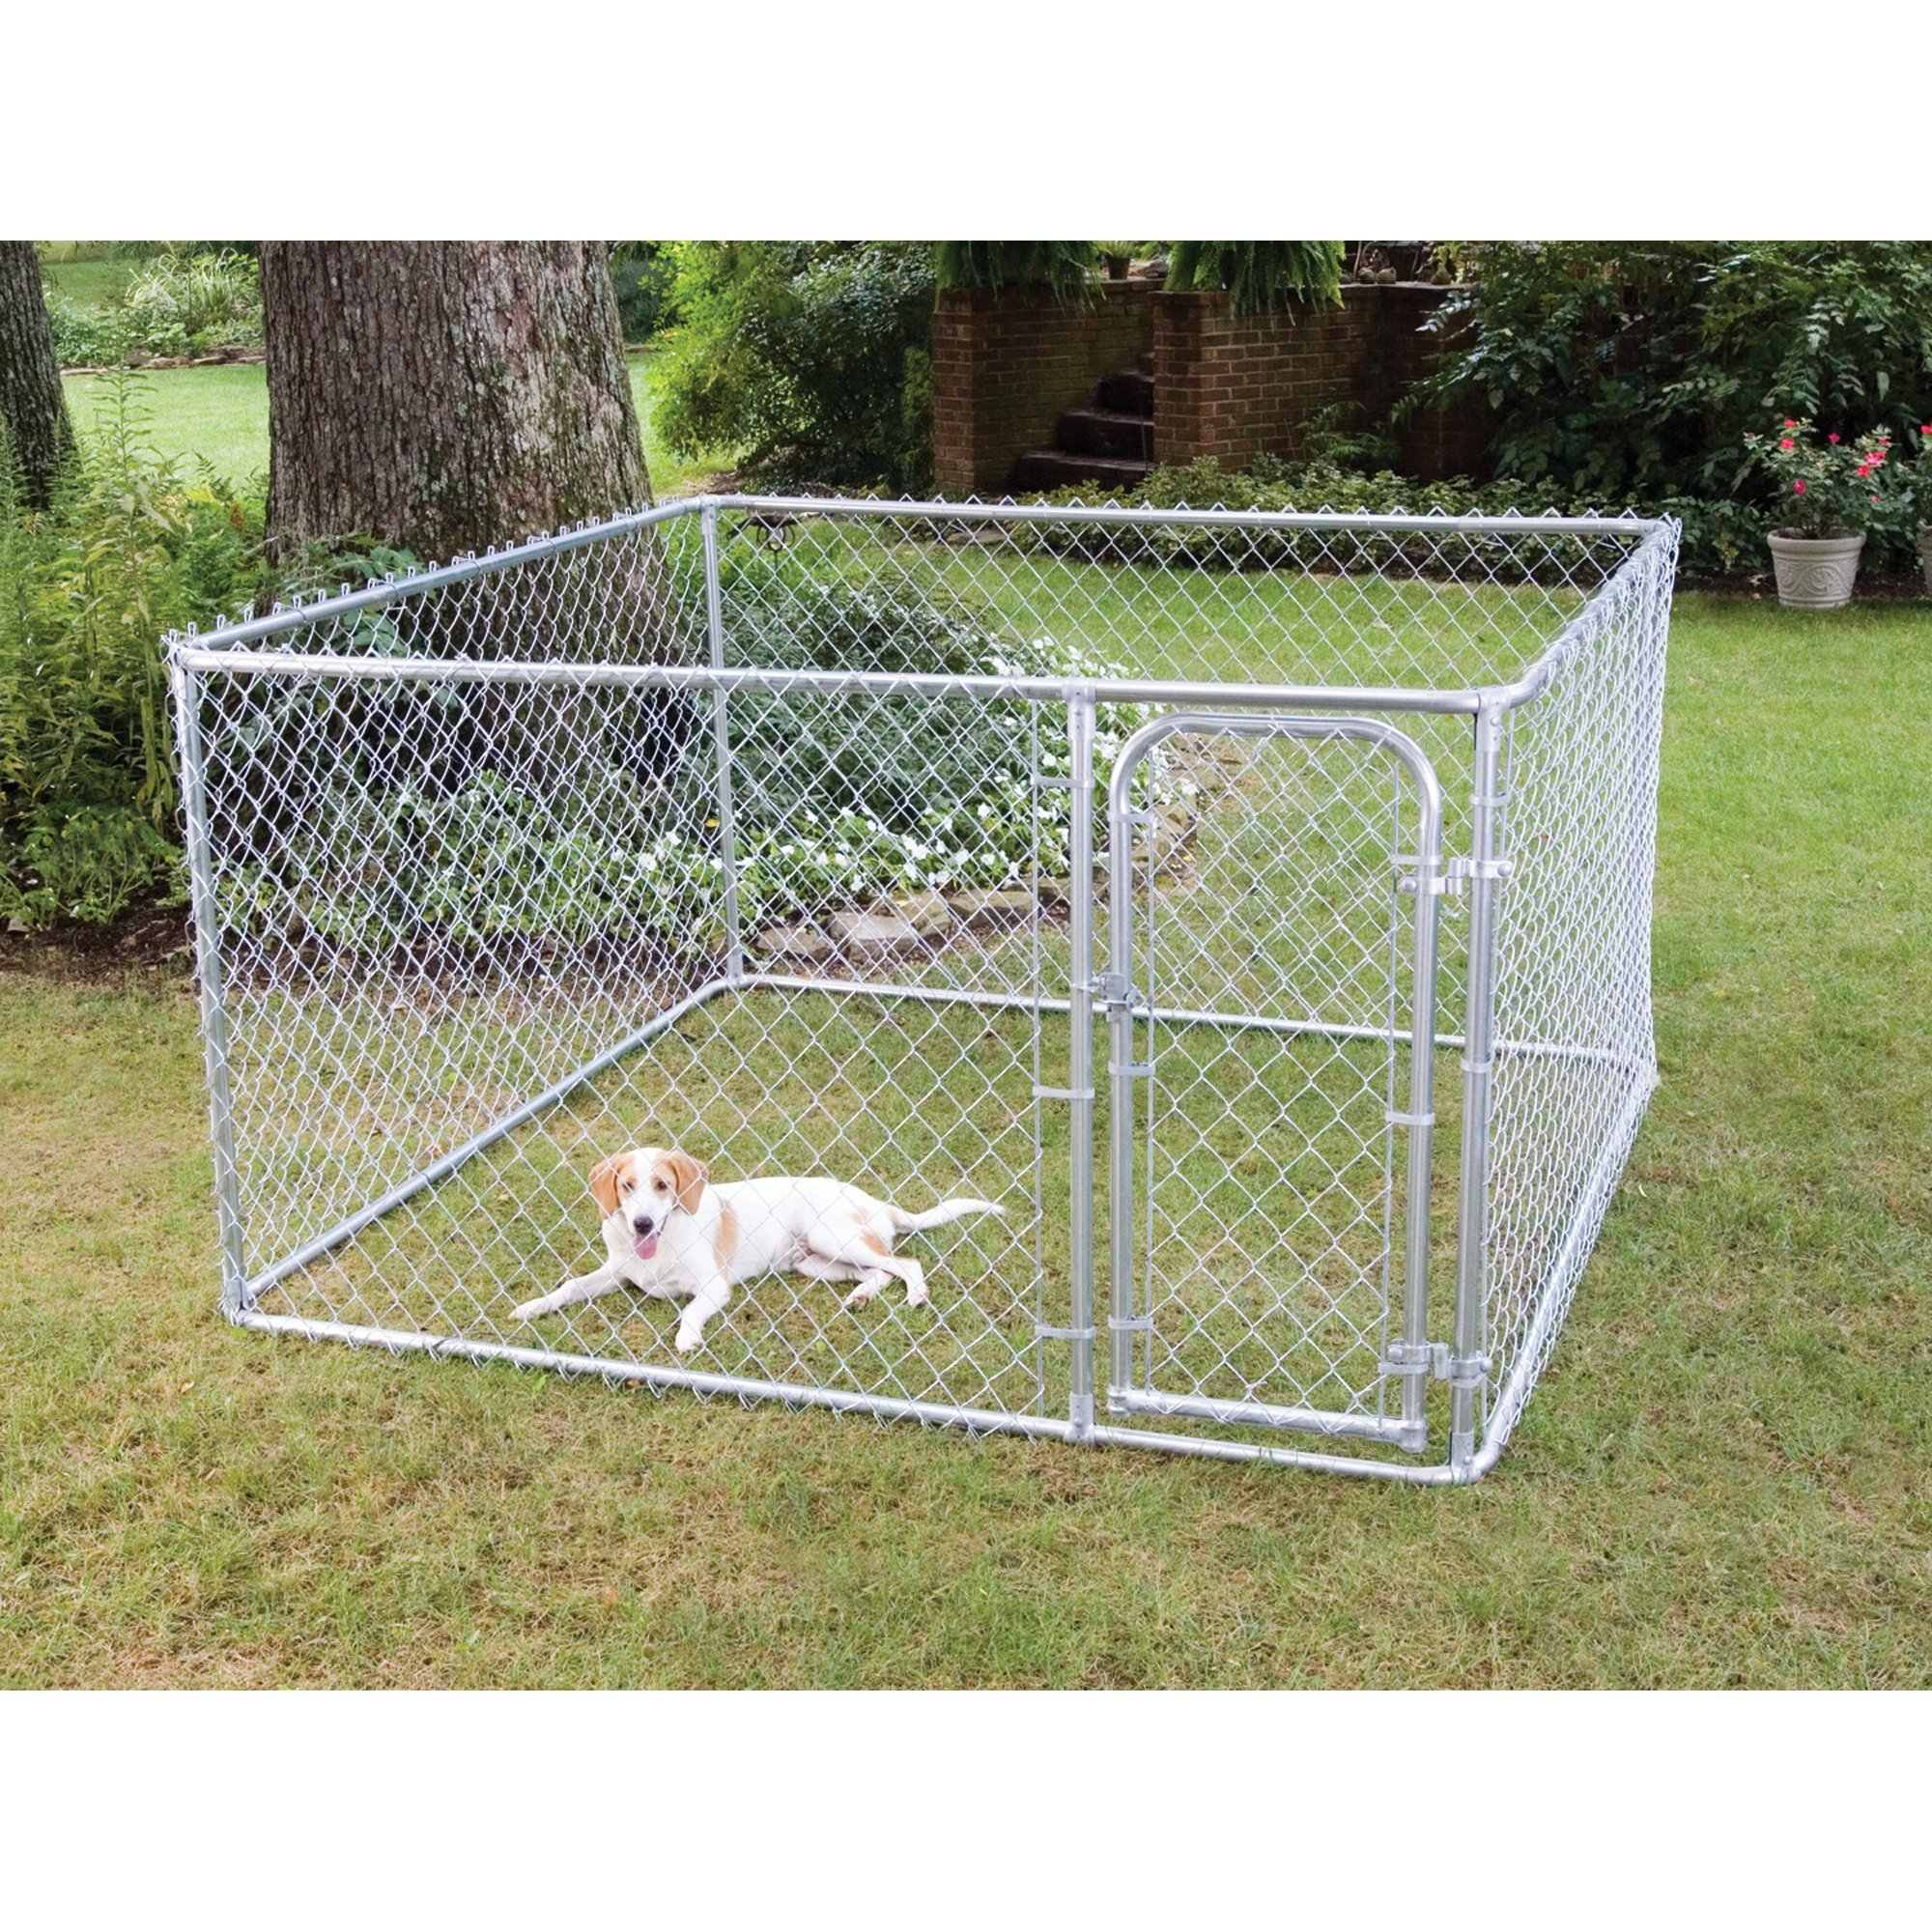 Fencemaster do it yourself chain link kennel petco for Puppy dog kennels